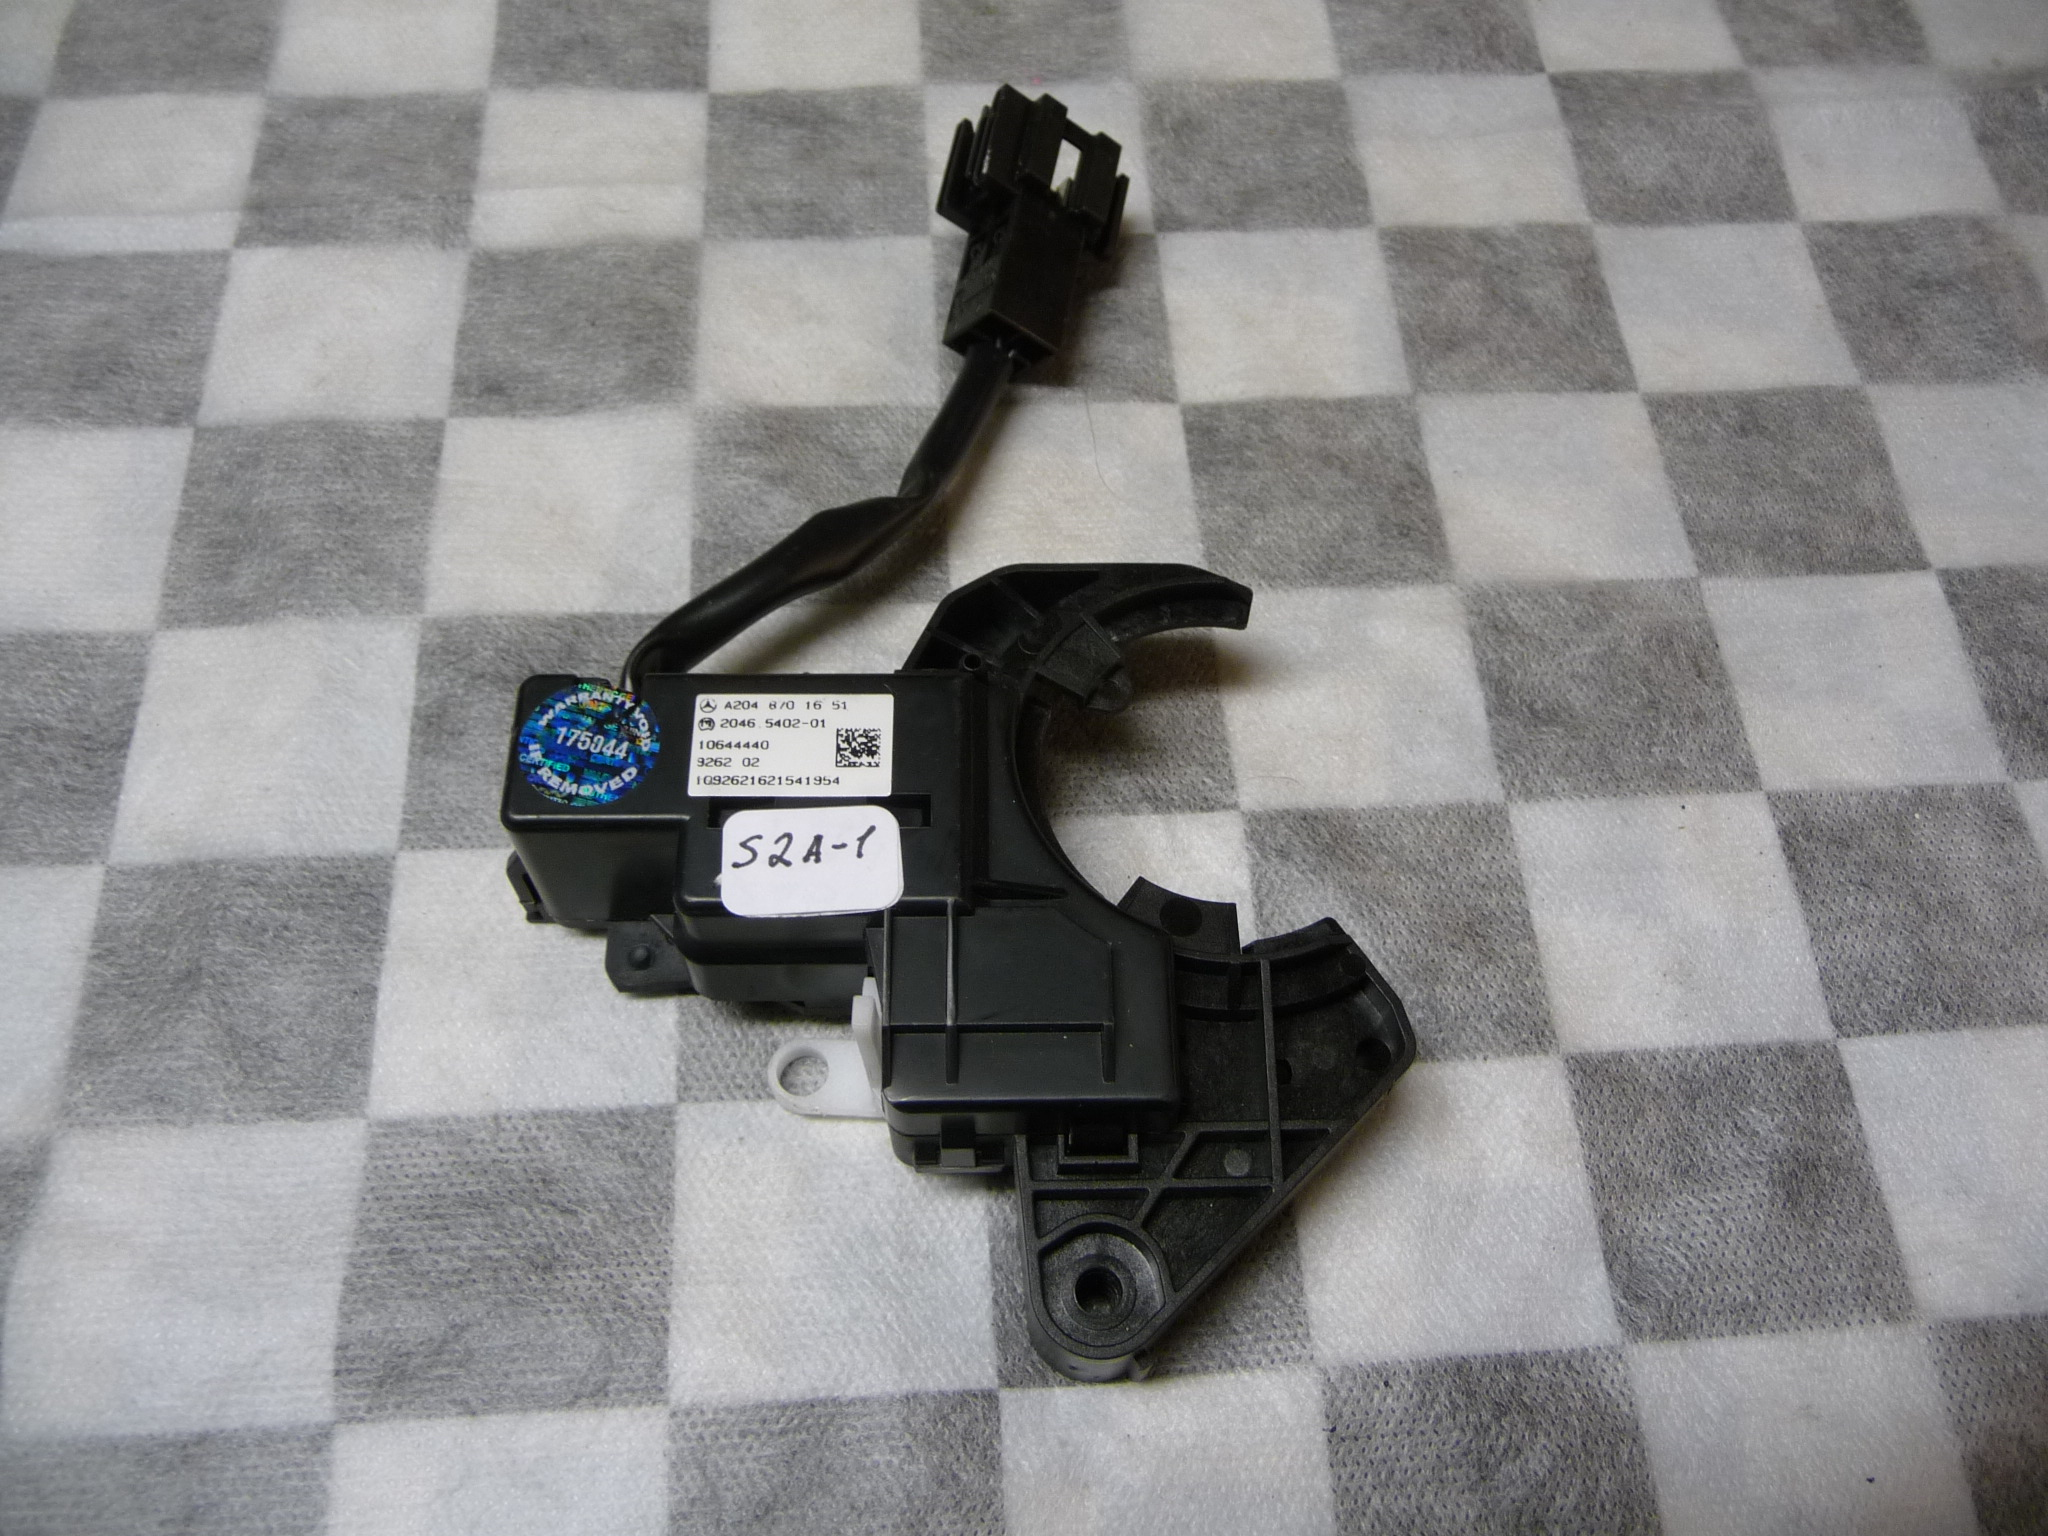 2010 2011 2012 2013 2014 2015 2016 2017 Mercedes Benz W204 C250 C350 E350 E550 Front Right Seat Back Lock A2048701651 OEM OE